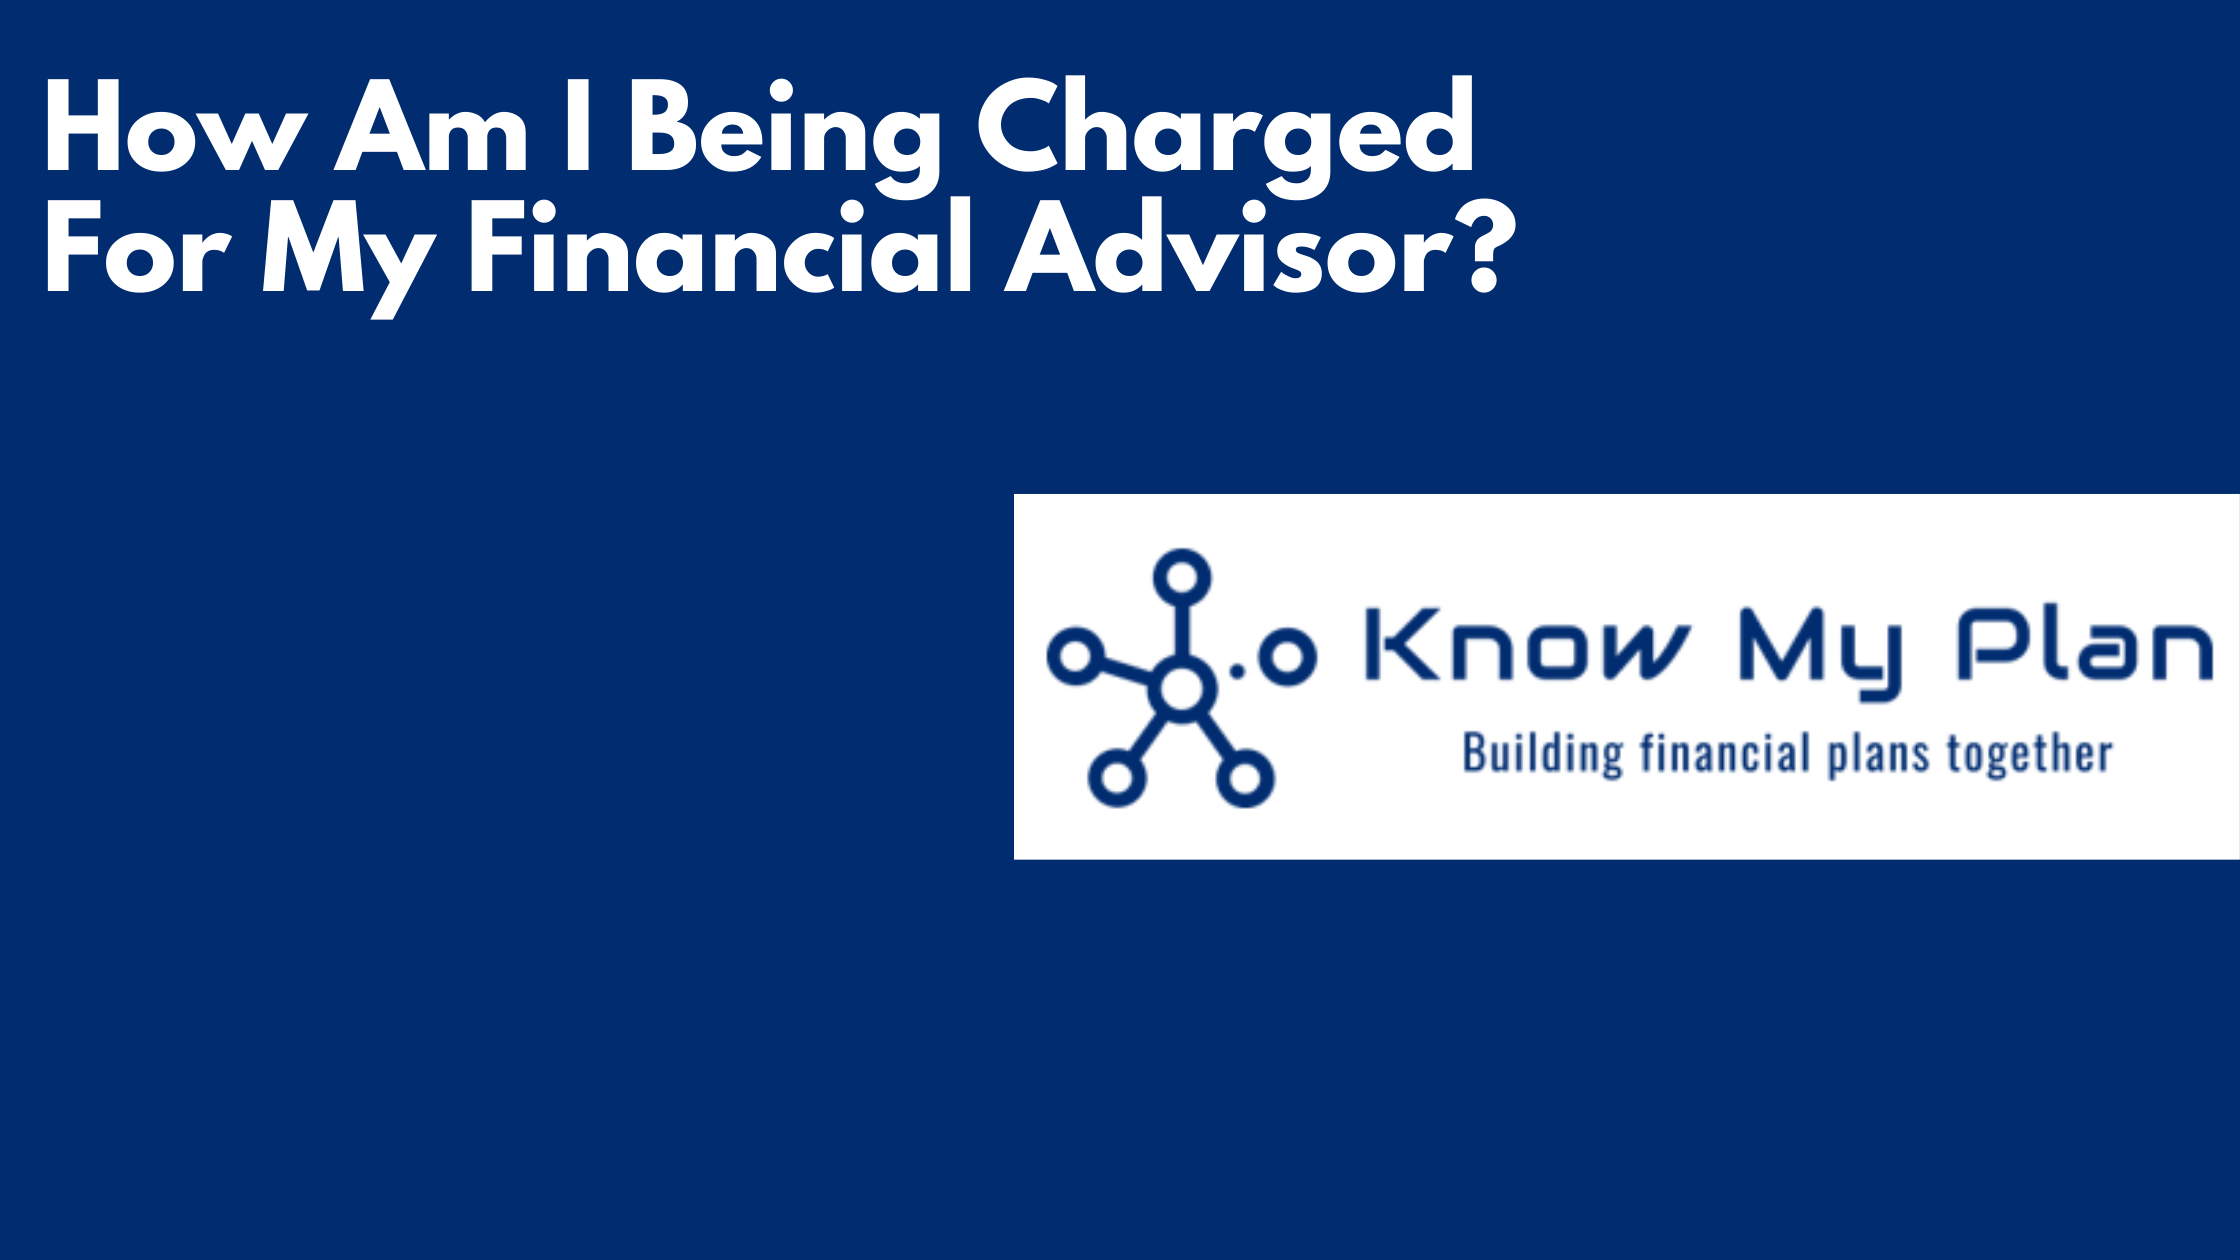 finanial advisor charges